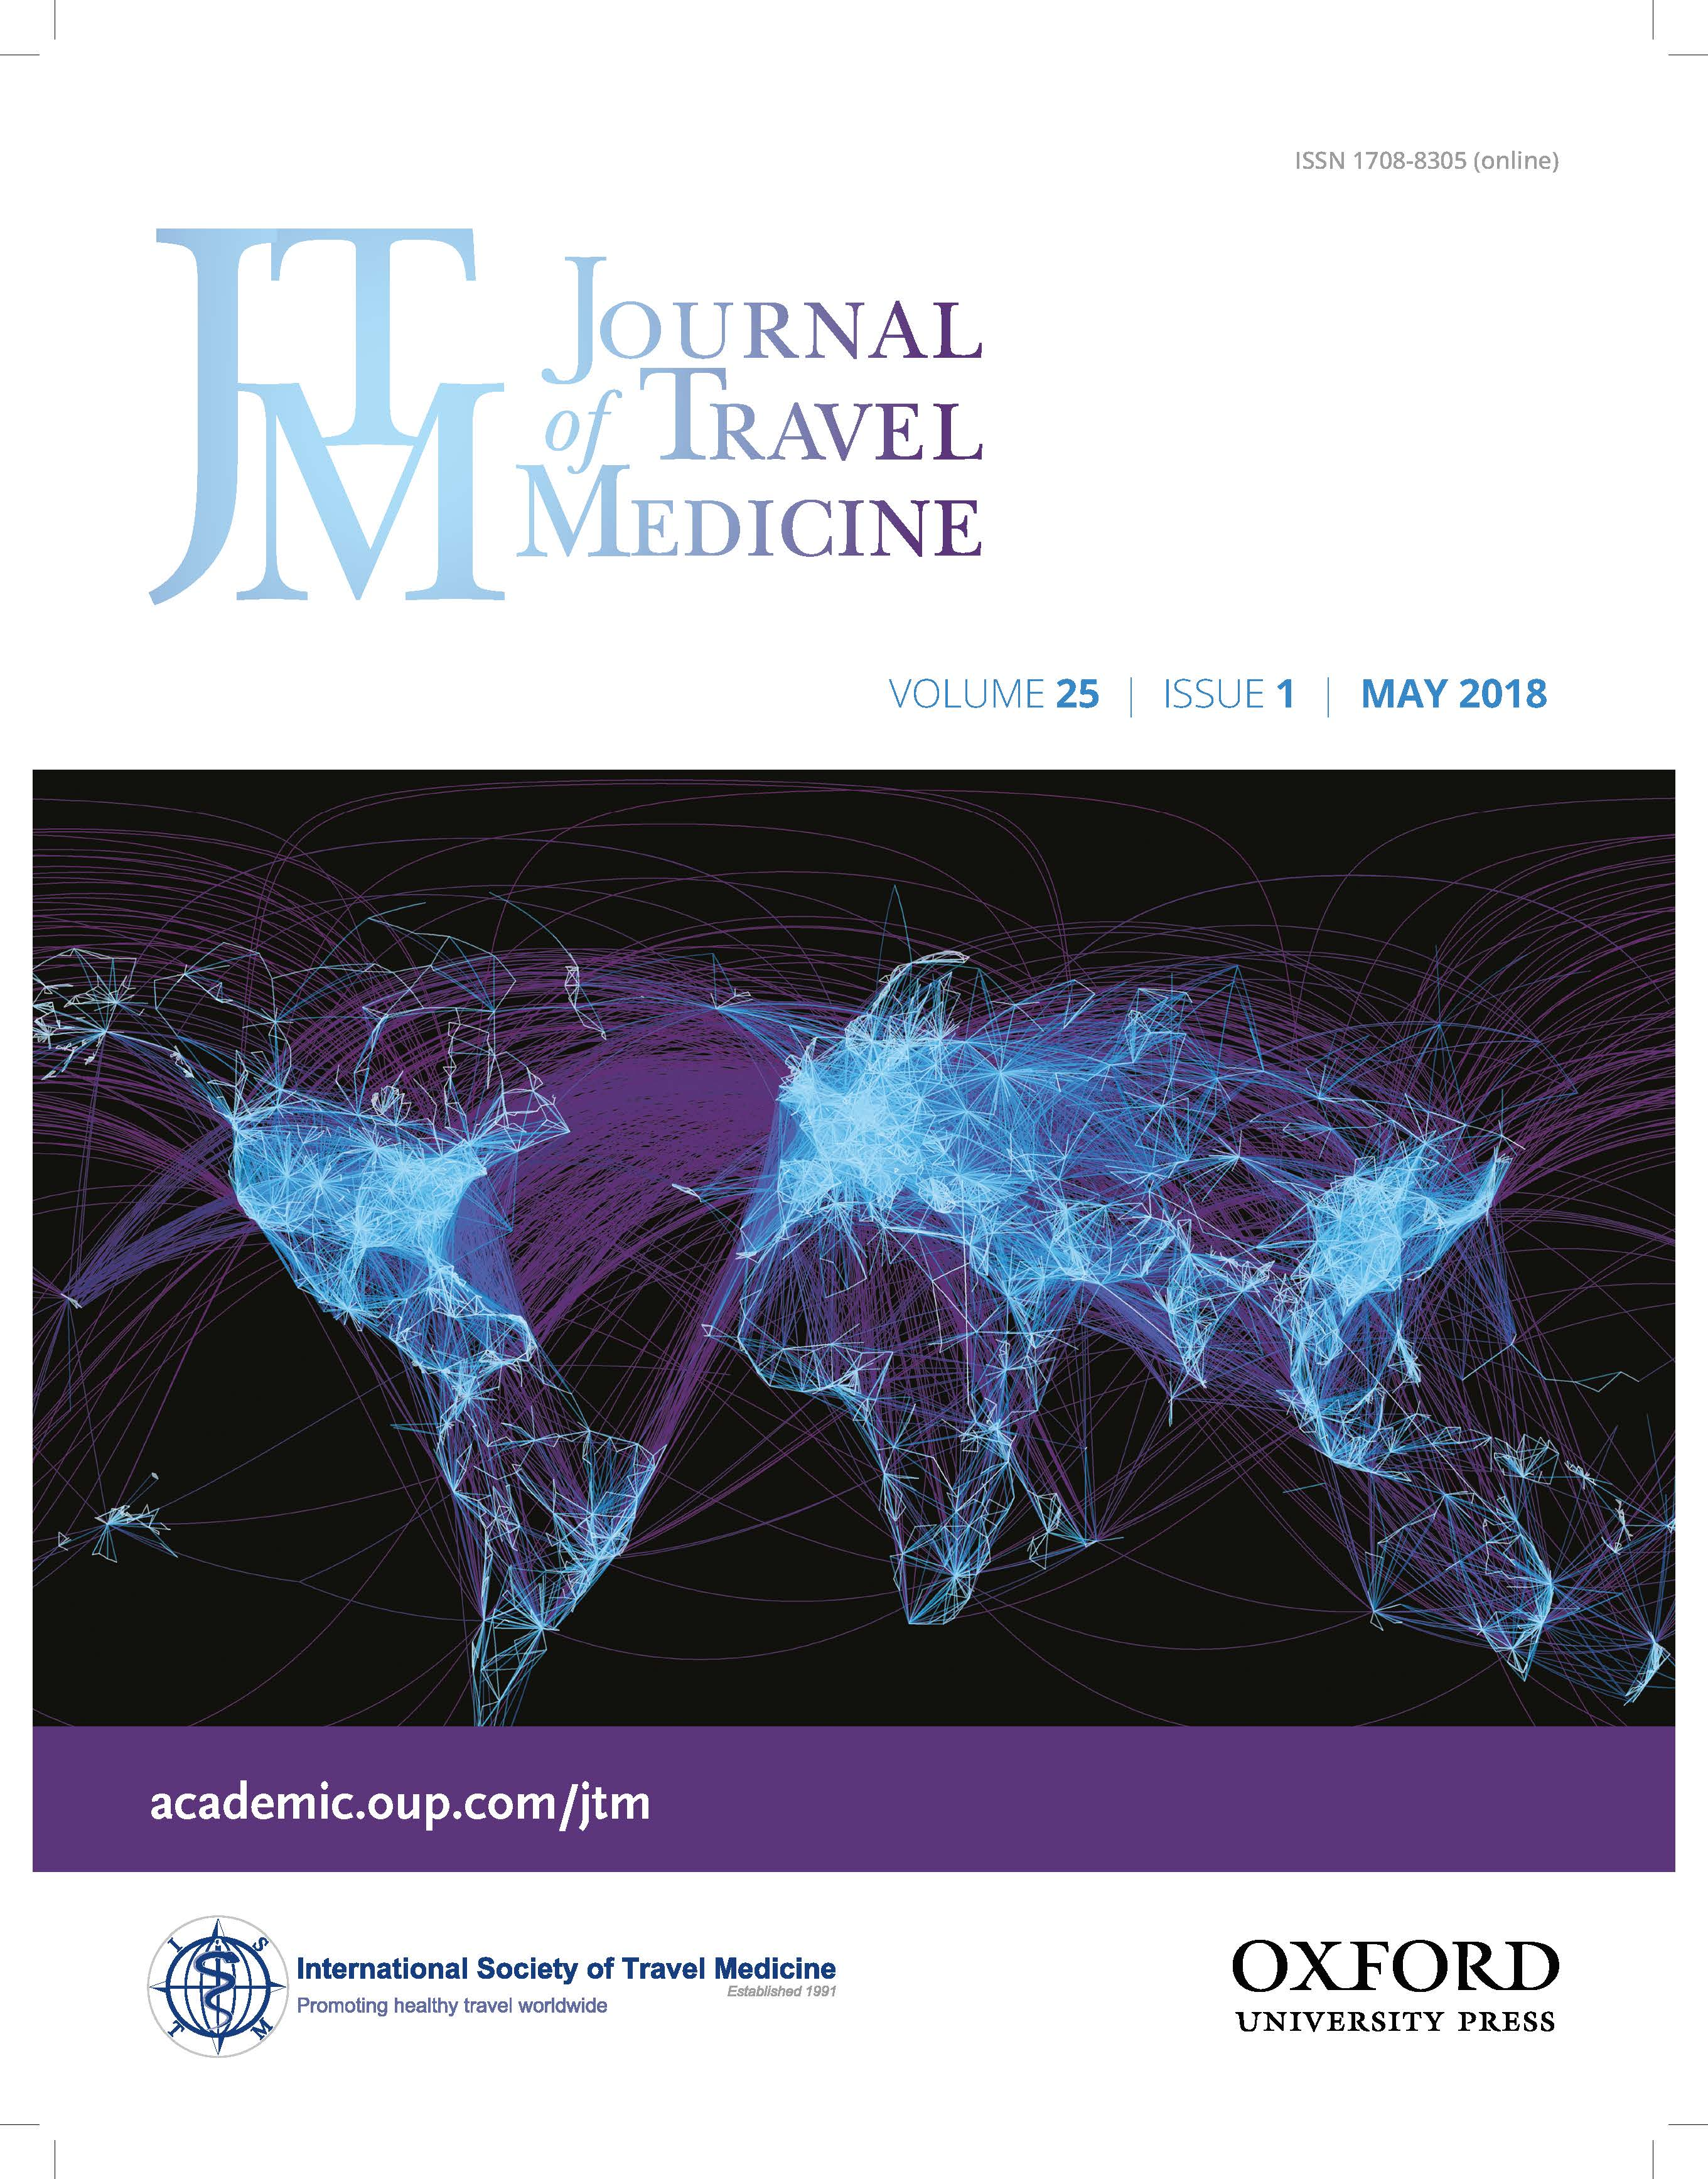 The Journal of Travel Medicine